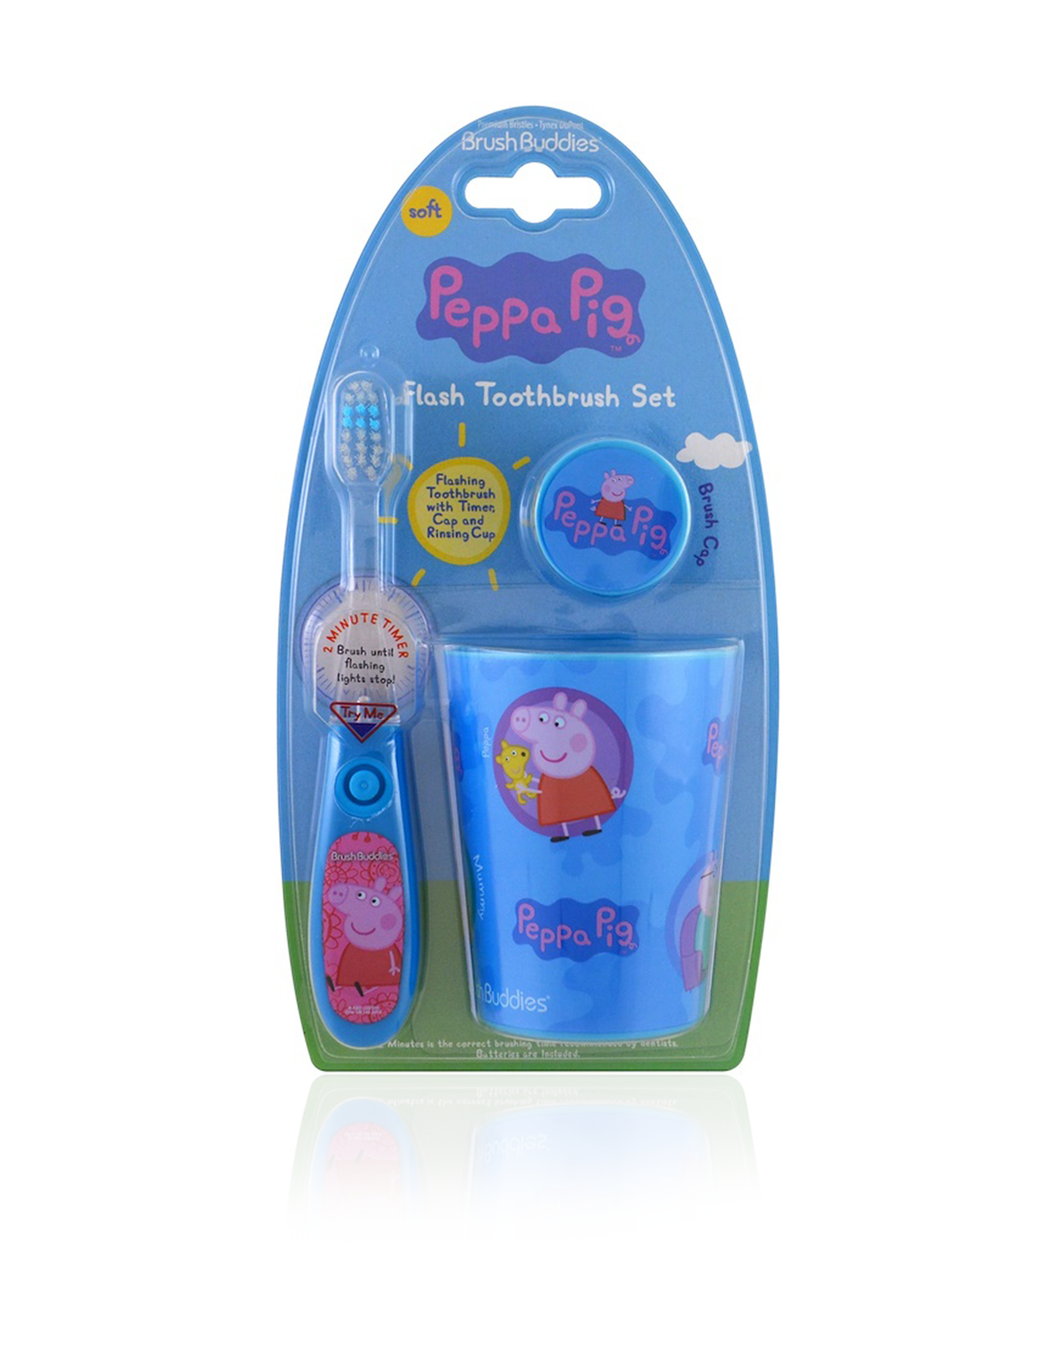 Brush Buddies Peppa Pig Flash Toothbrush Gift Set